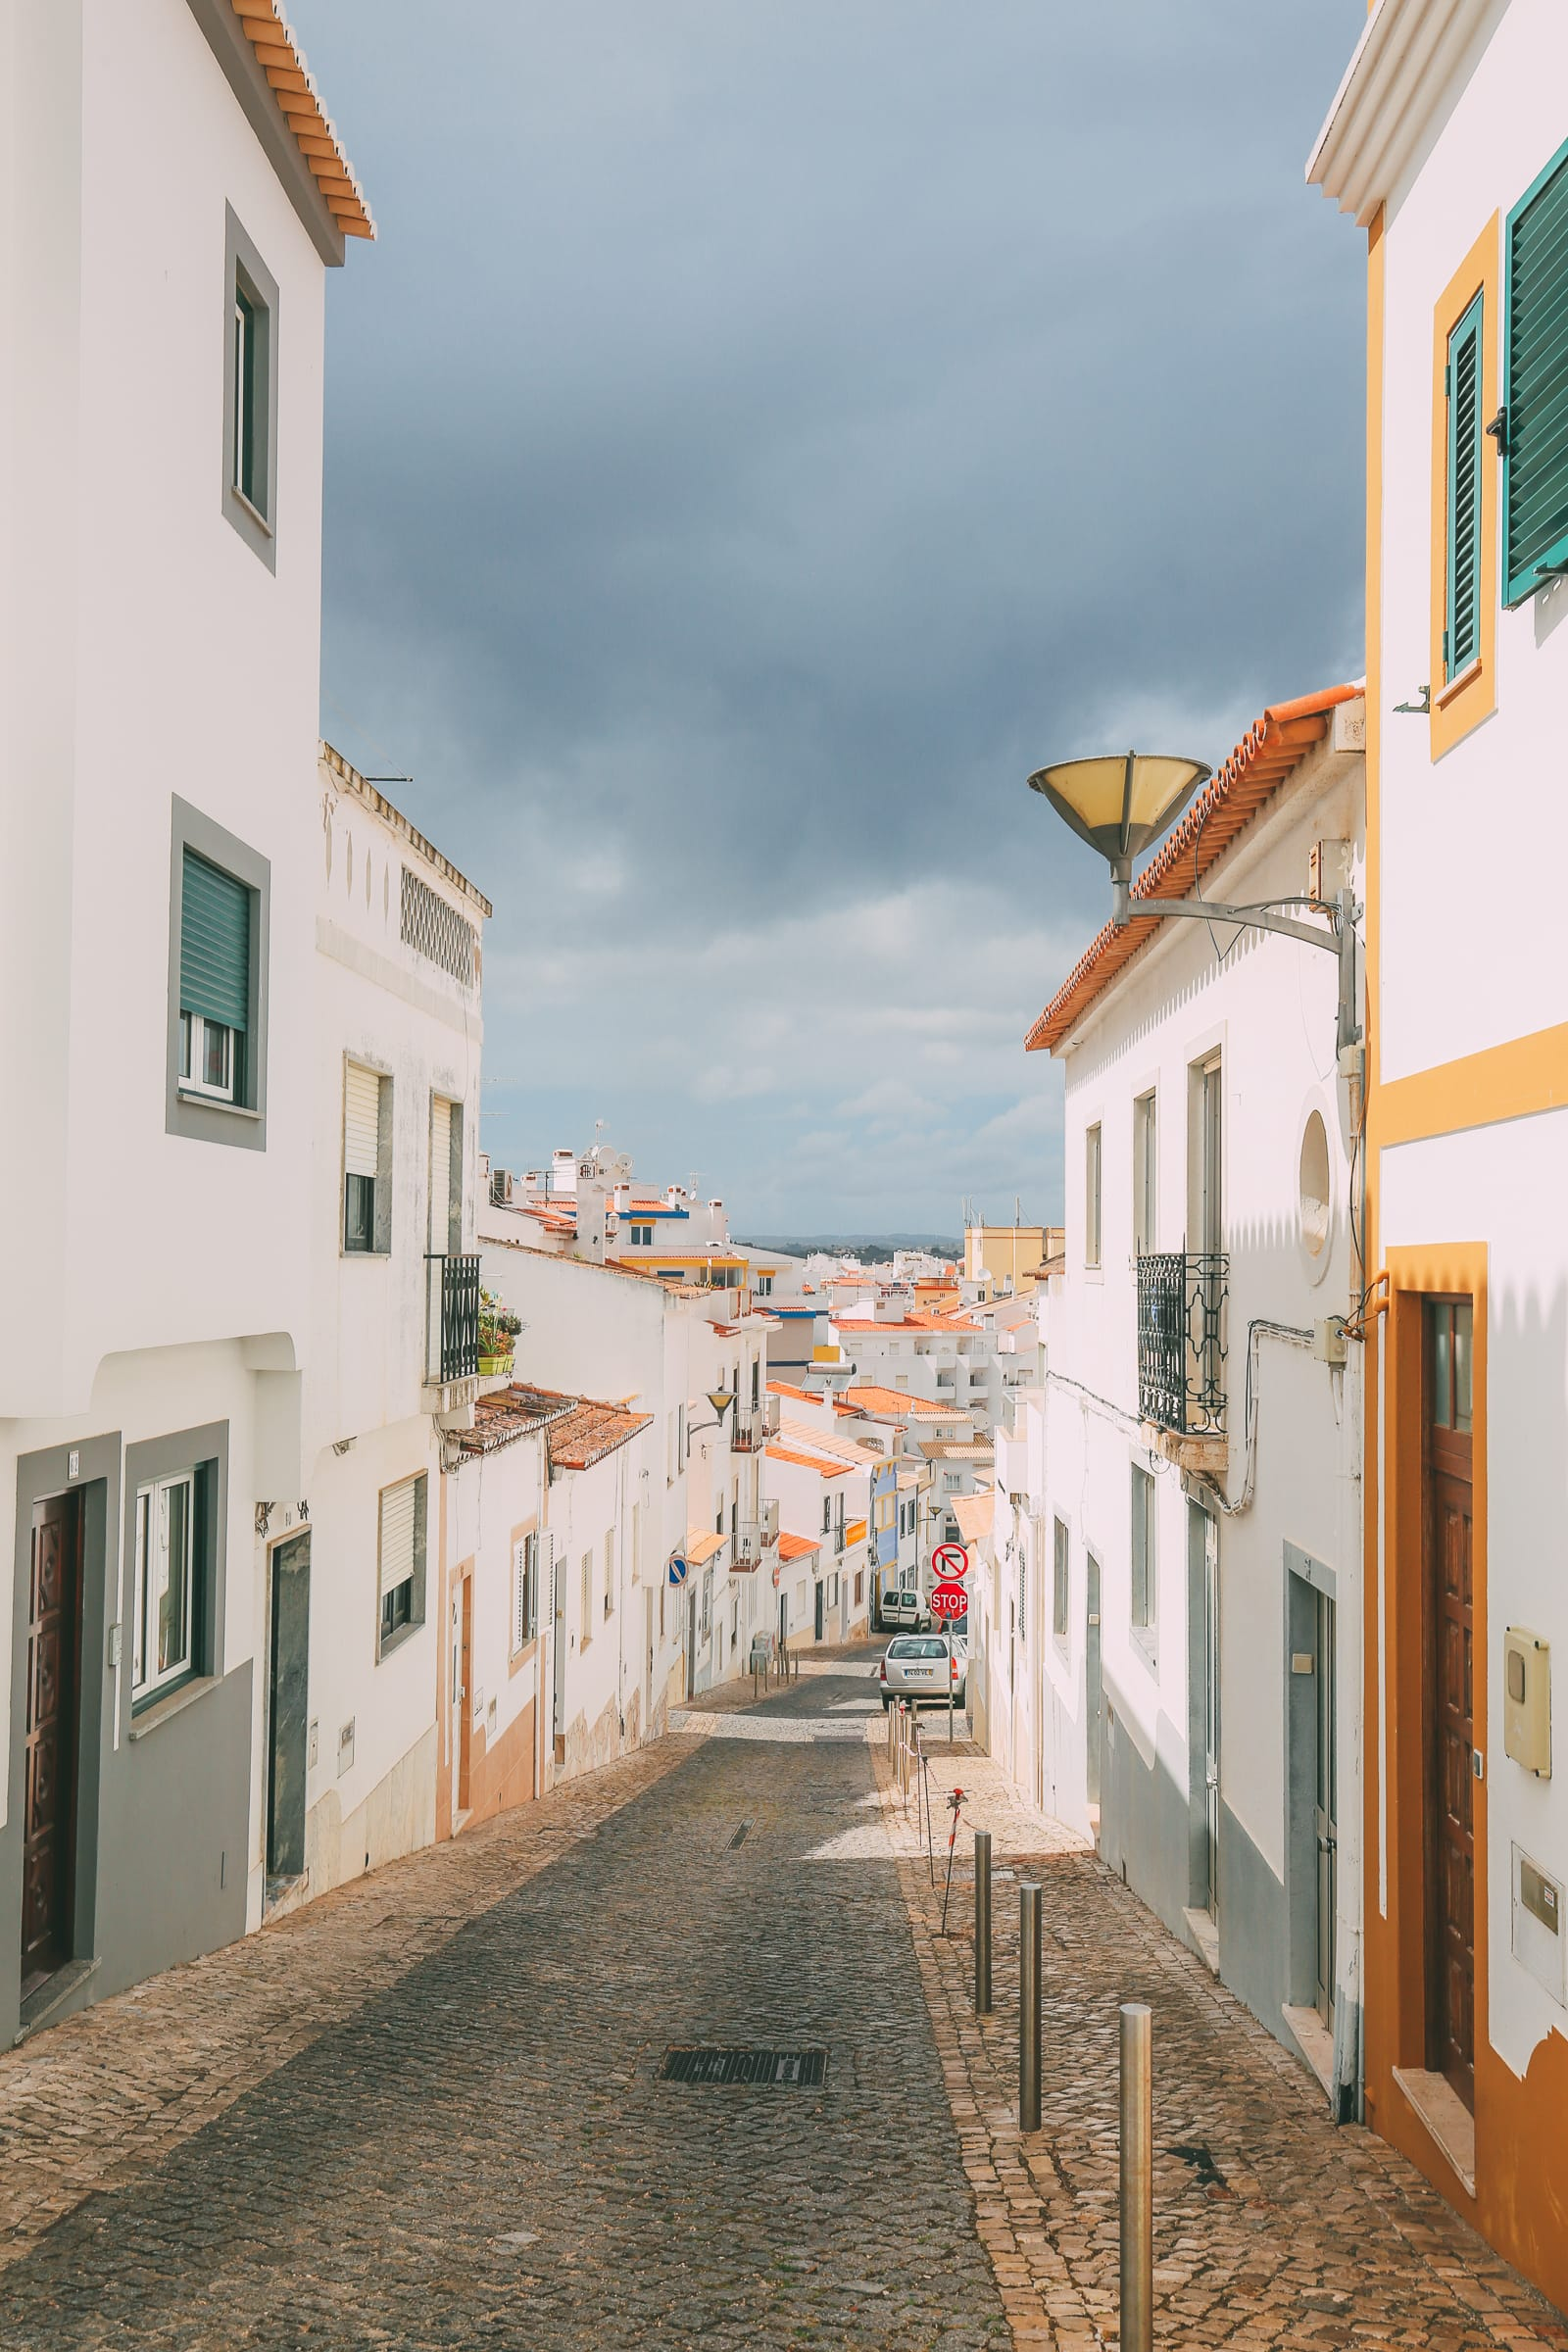 24 Hours In Lagos And Sagres In The Algarve, Portugal (30)